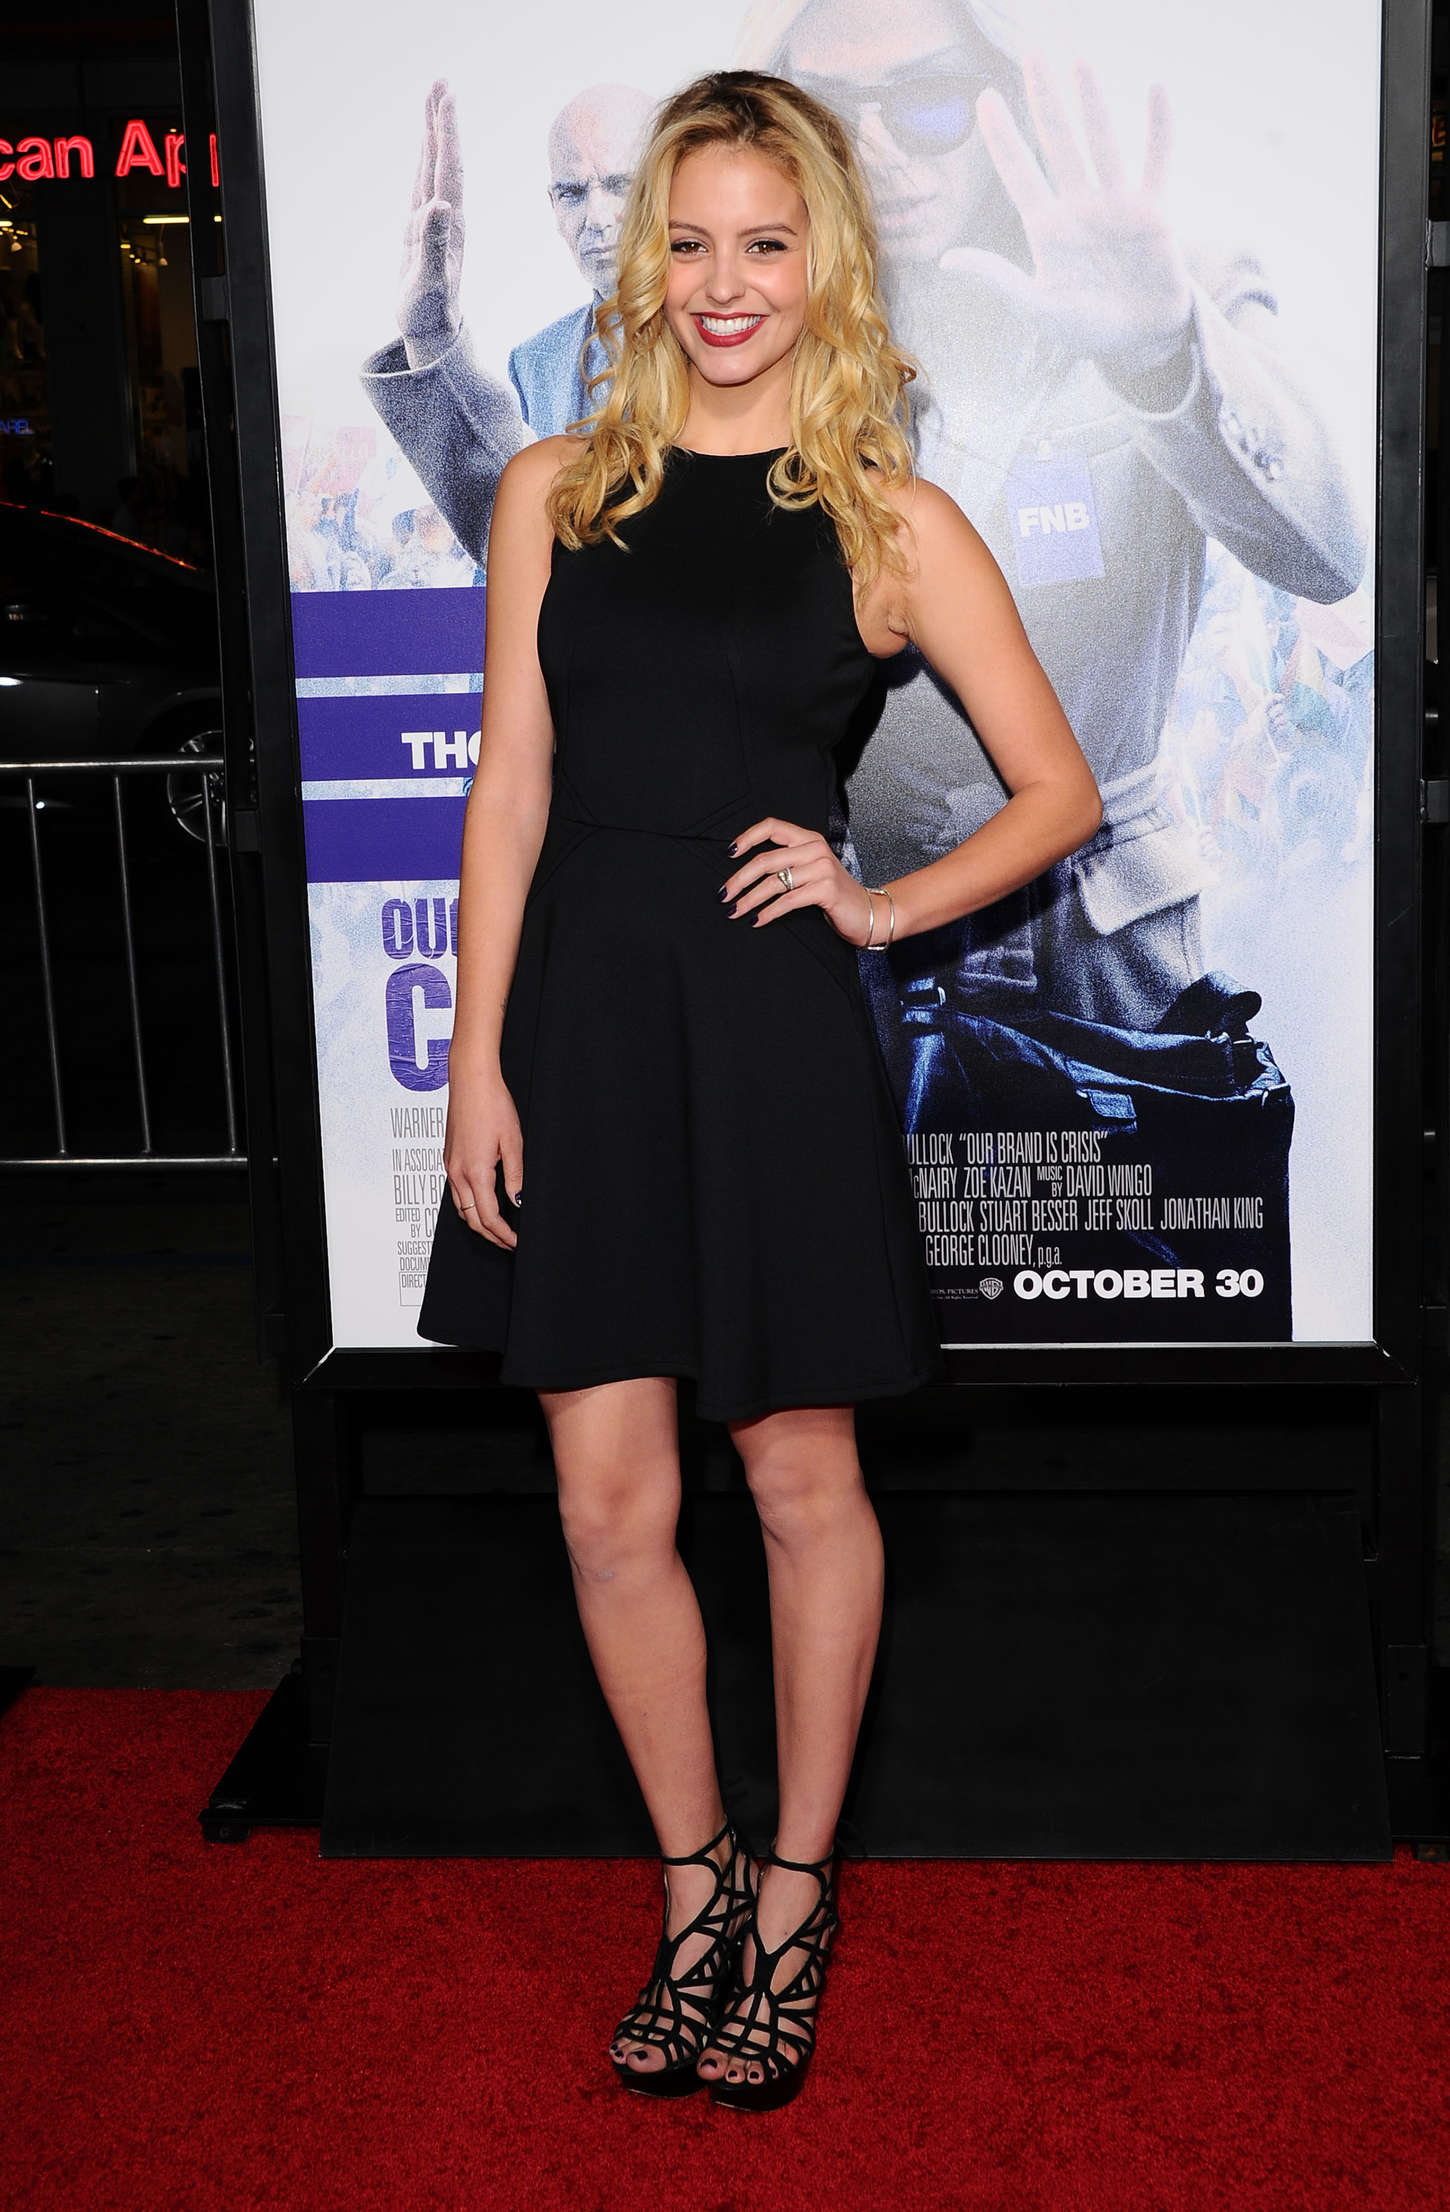 Gage Golightly Our Brand Is Crisis Premiere in Hollywood